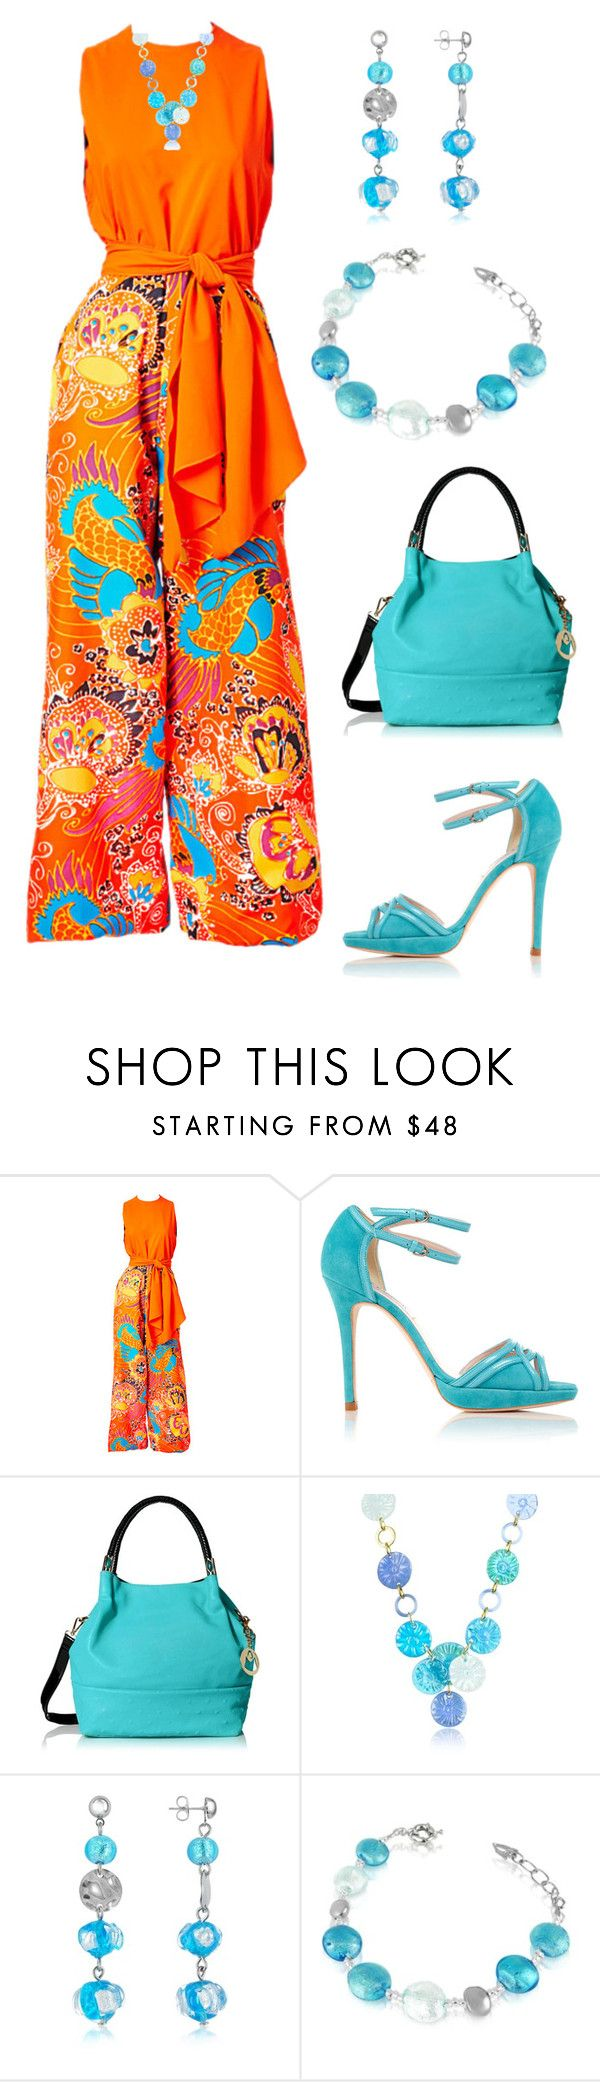 """Sin título #1315"" by marisol-menahem ❤ liked on Polyvore featuring L.K.Bennett and Antica Murrina"